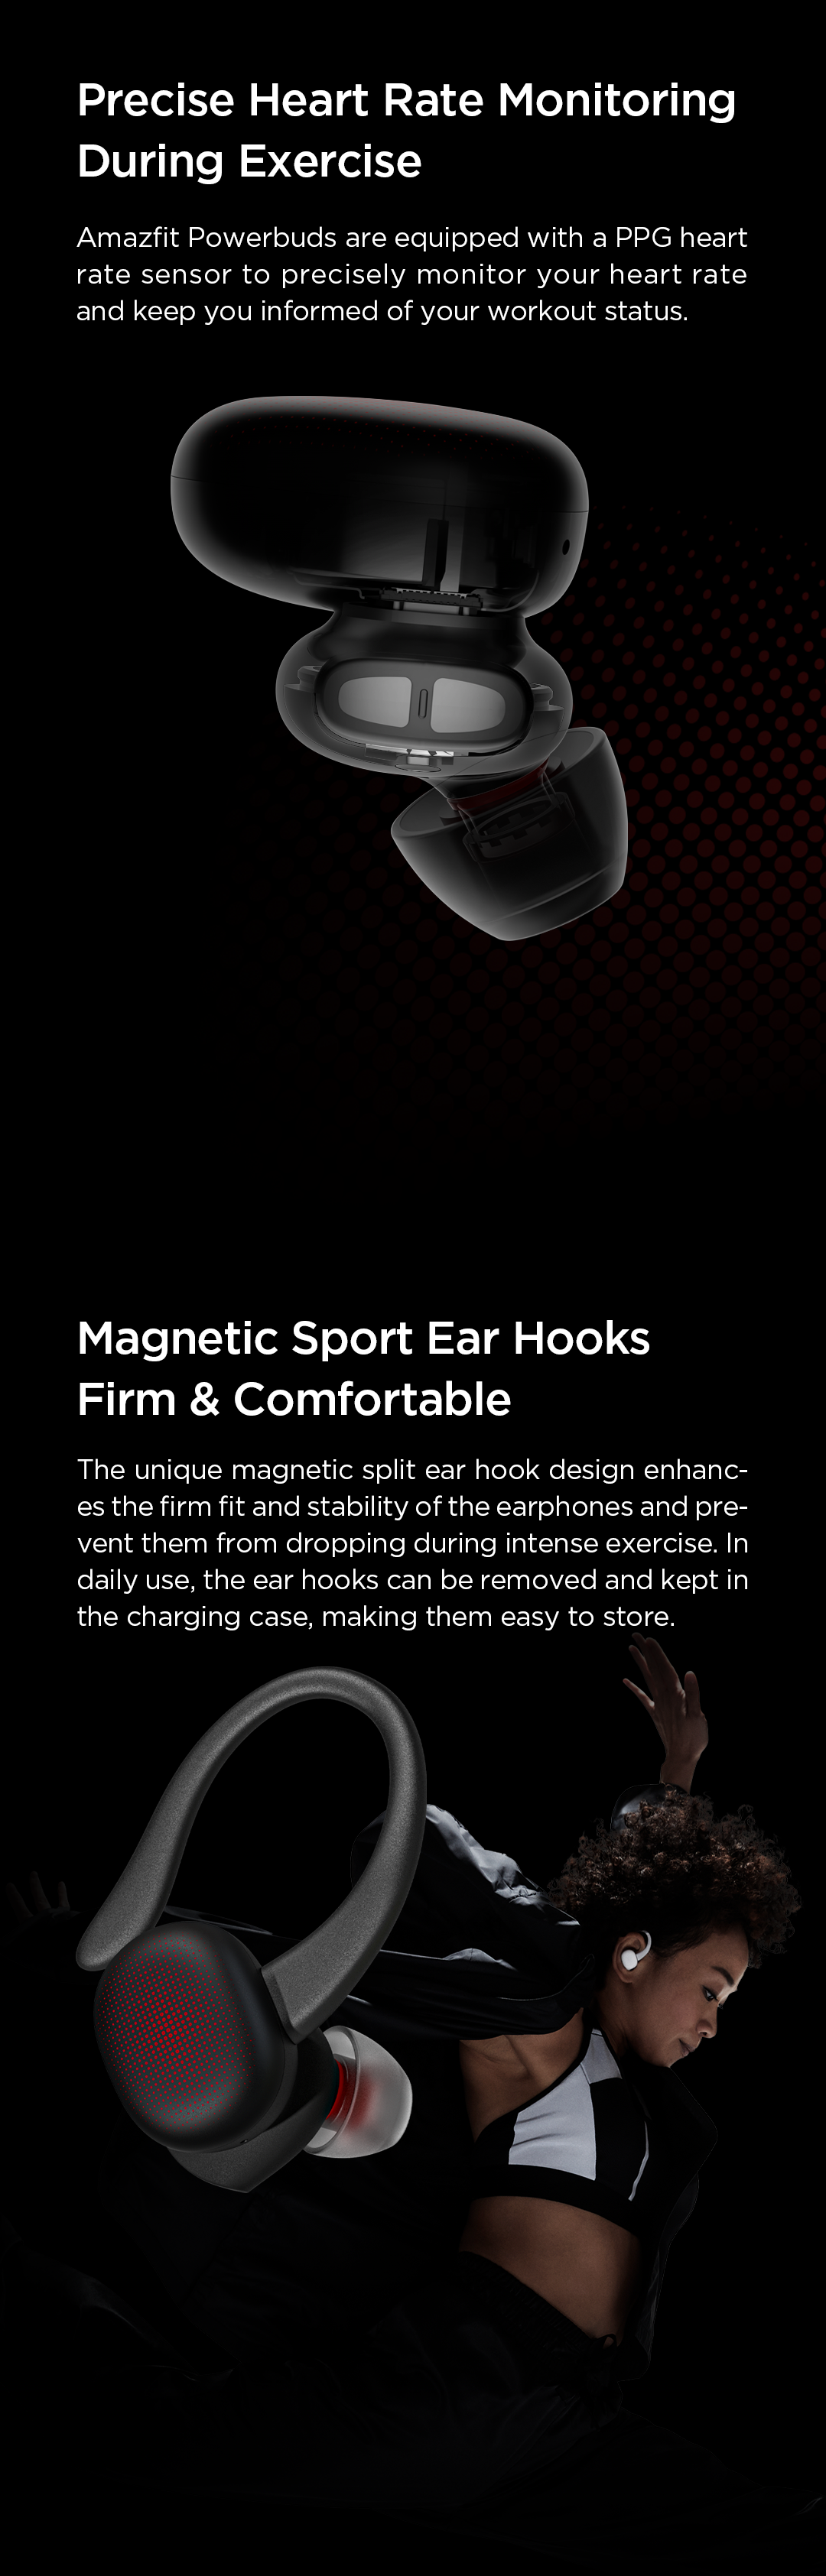 Amazfit PowerBuds - TWS Wireless In-Ear Phones